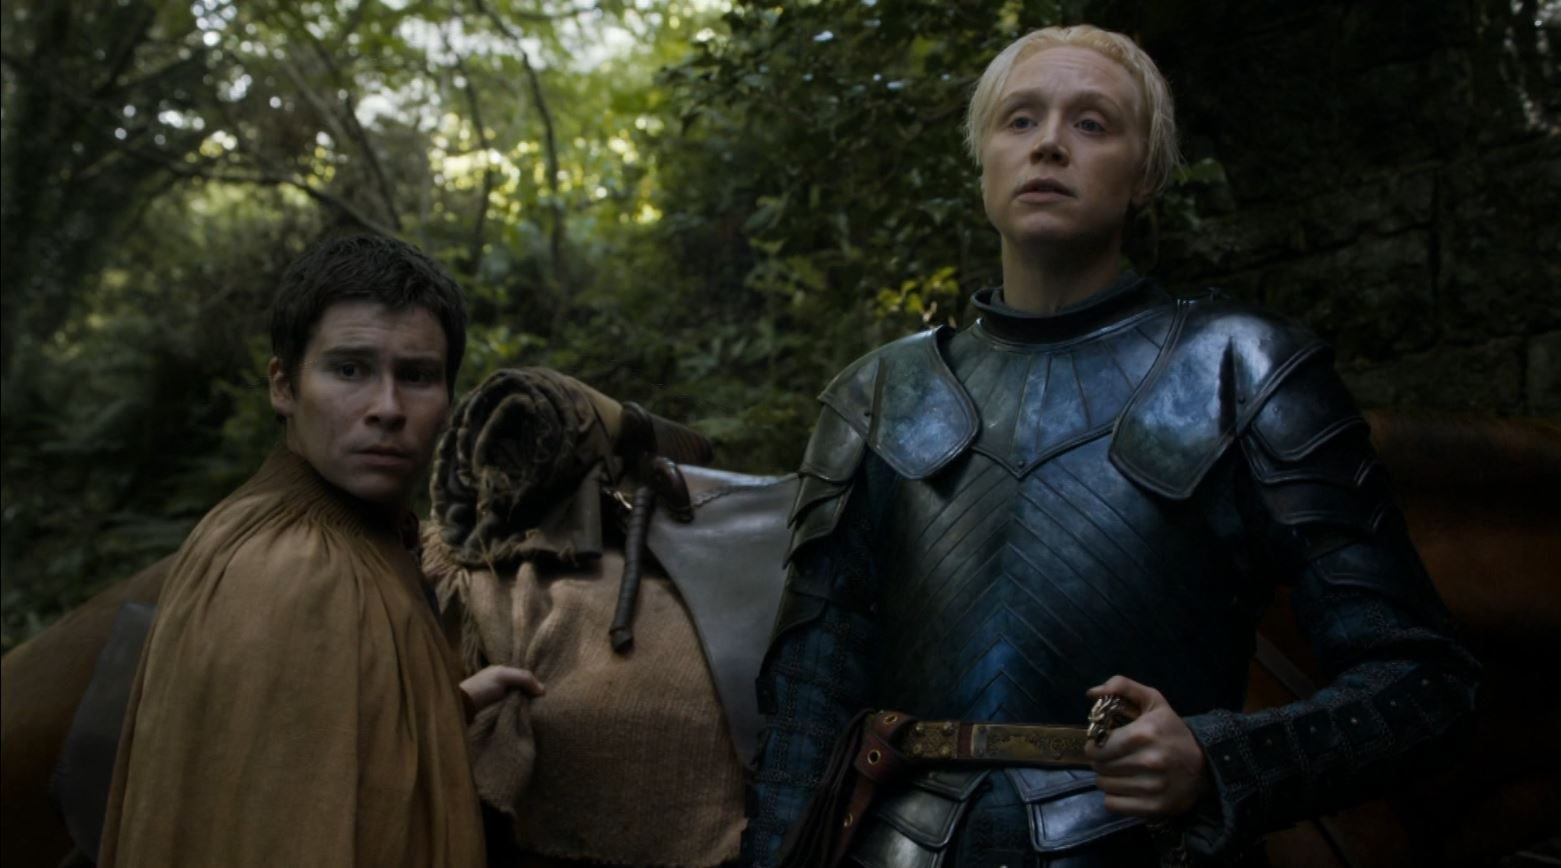 Game Of Thrones S4Ep7 Mockingbird Review - Lady Brienne and Podrick trying to find Sansa